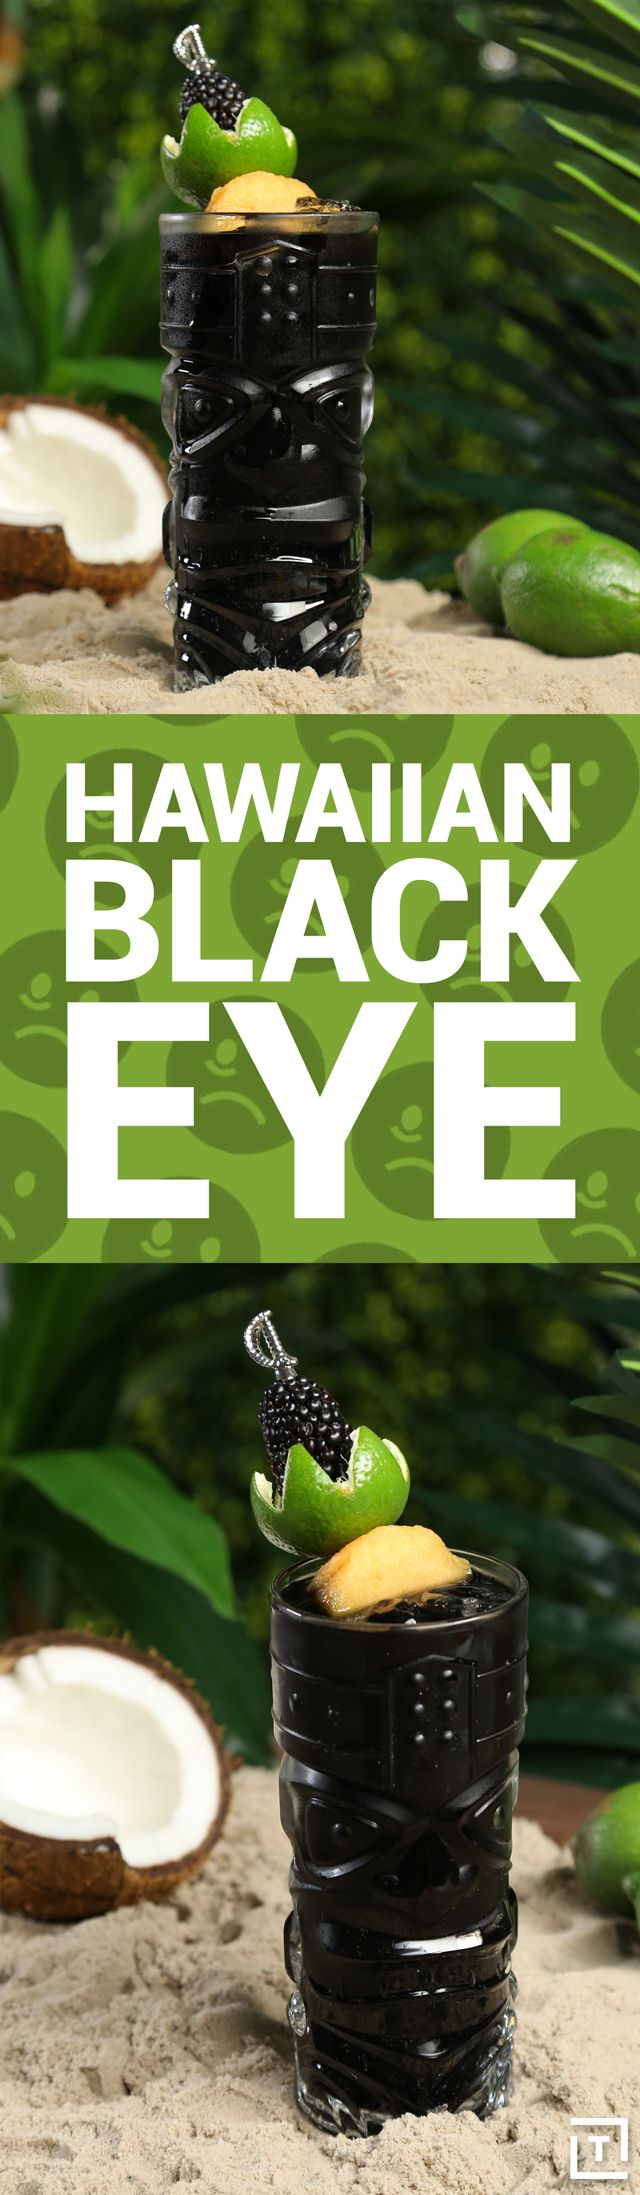 Hawaiian black eye is actually full of good things -- two types of rum, lime juice, cinnamon syrup, blackberries, and just a touch of black food coloring. Serve it up in a clear tiki glass and have fun reassuring your friends that you're not trying to poison them.